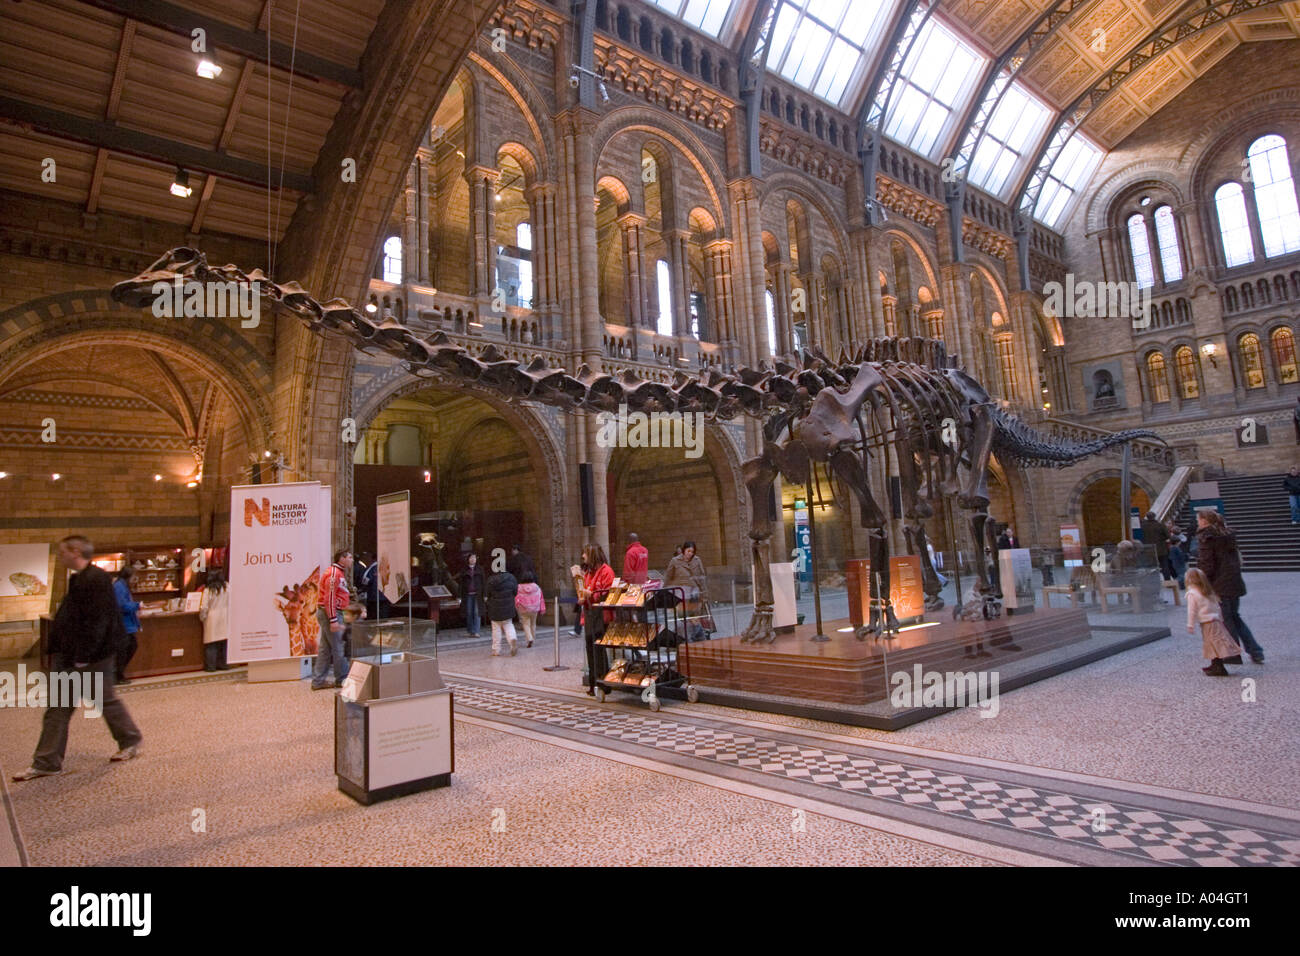 Exhibits in Natural History Museum South Kensington London England Britain GB UK - Stock Image